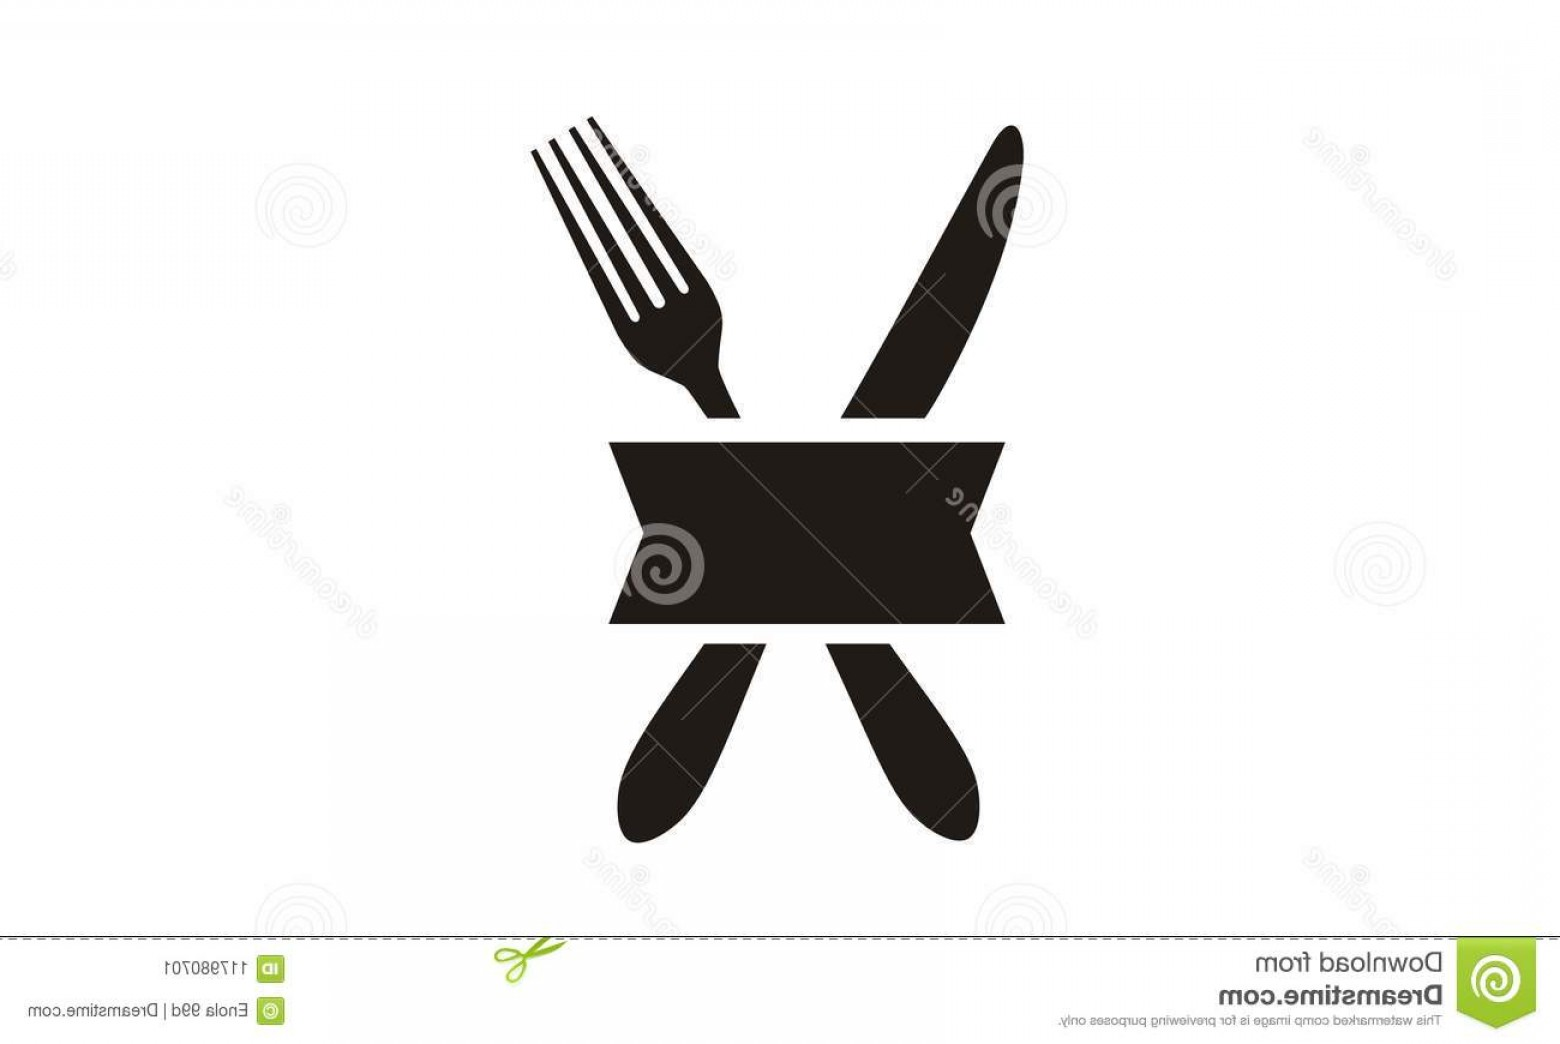 Modern Knife Fork And Spoon Vector Logo: Knife Fork Ribbon Restaurant Logo Design Inspiration Modern Simple Easy To Recognize Right Your Company Image